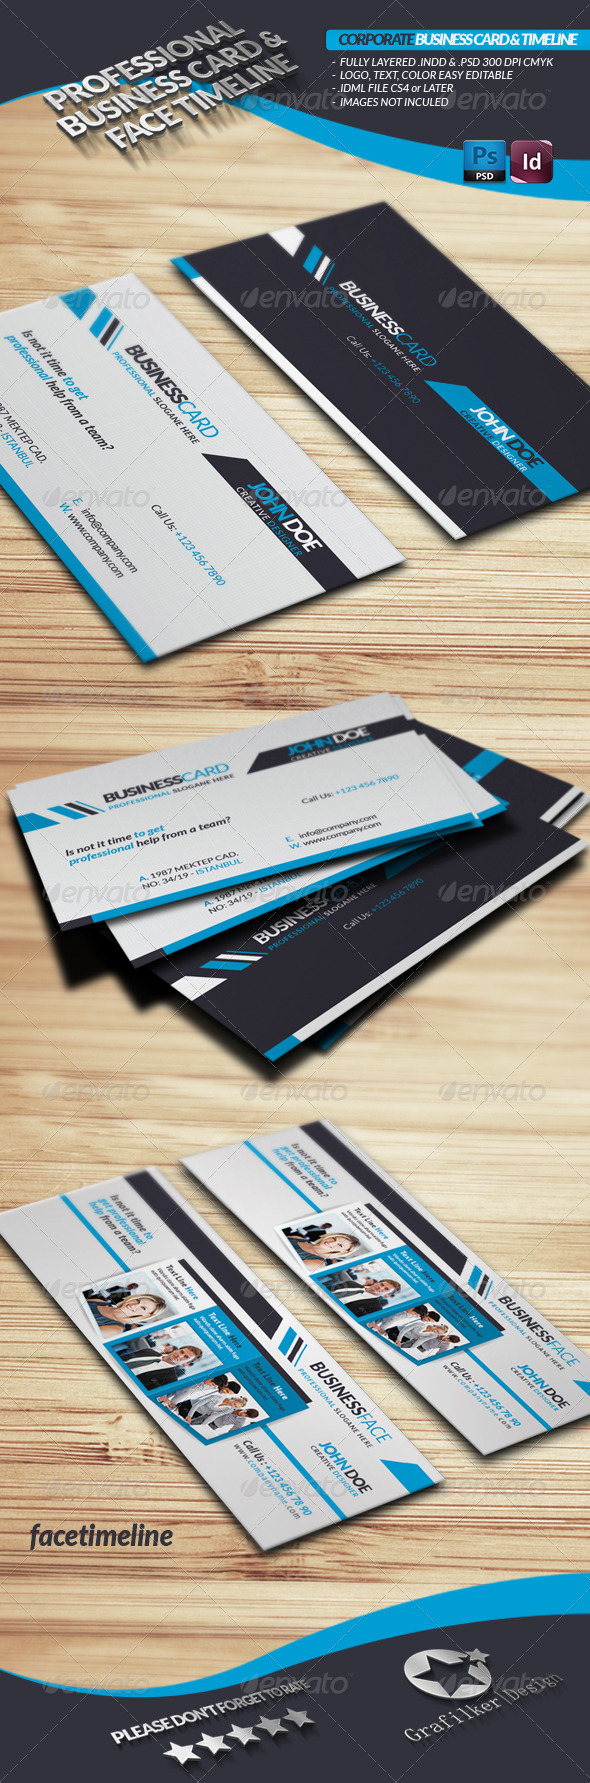 Corporate Business Card Face-Timeline - Corporate Business Cards